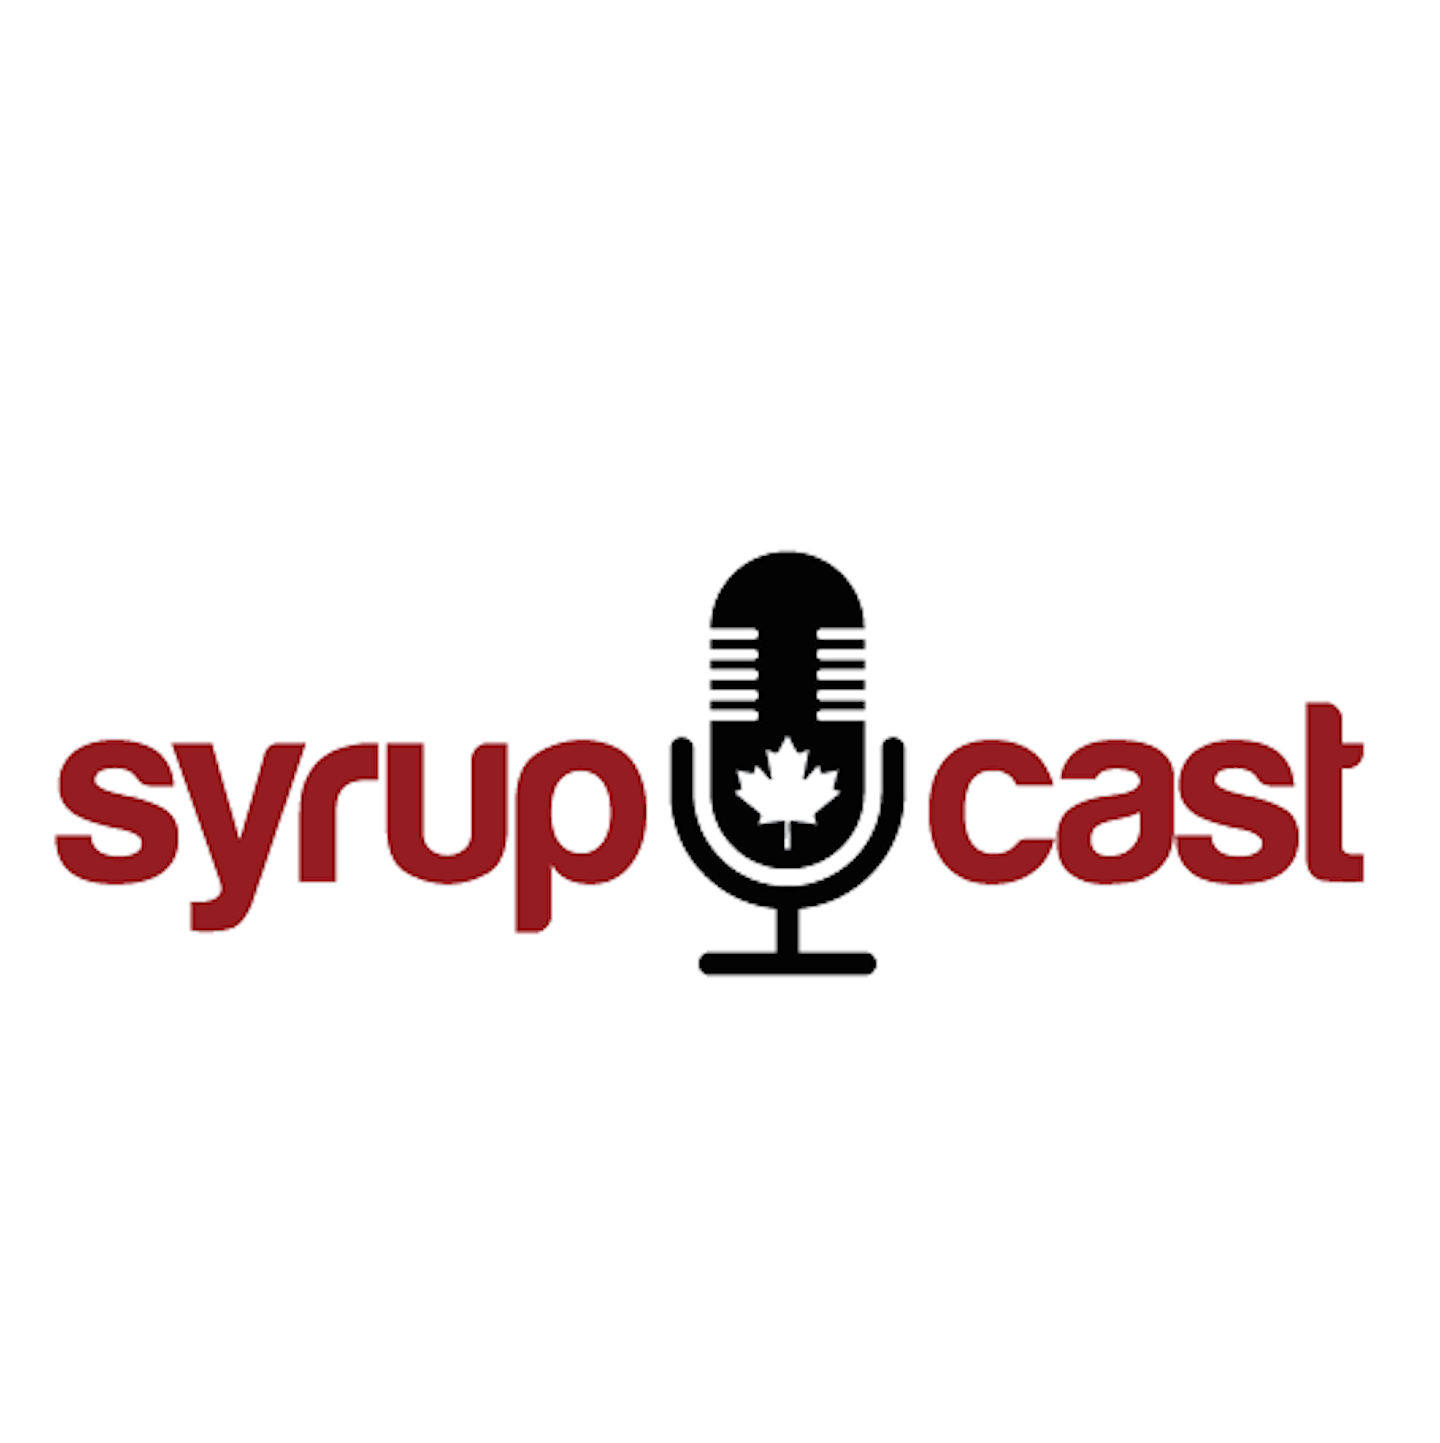 SyrupCast 62: The future with Android N and Apple's next play